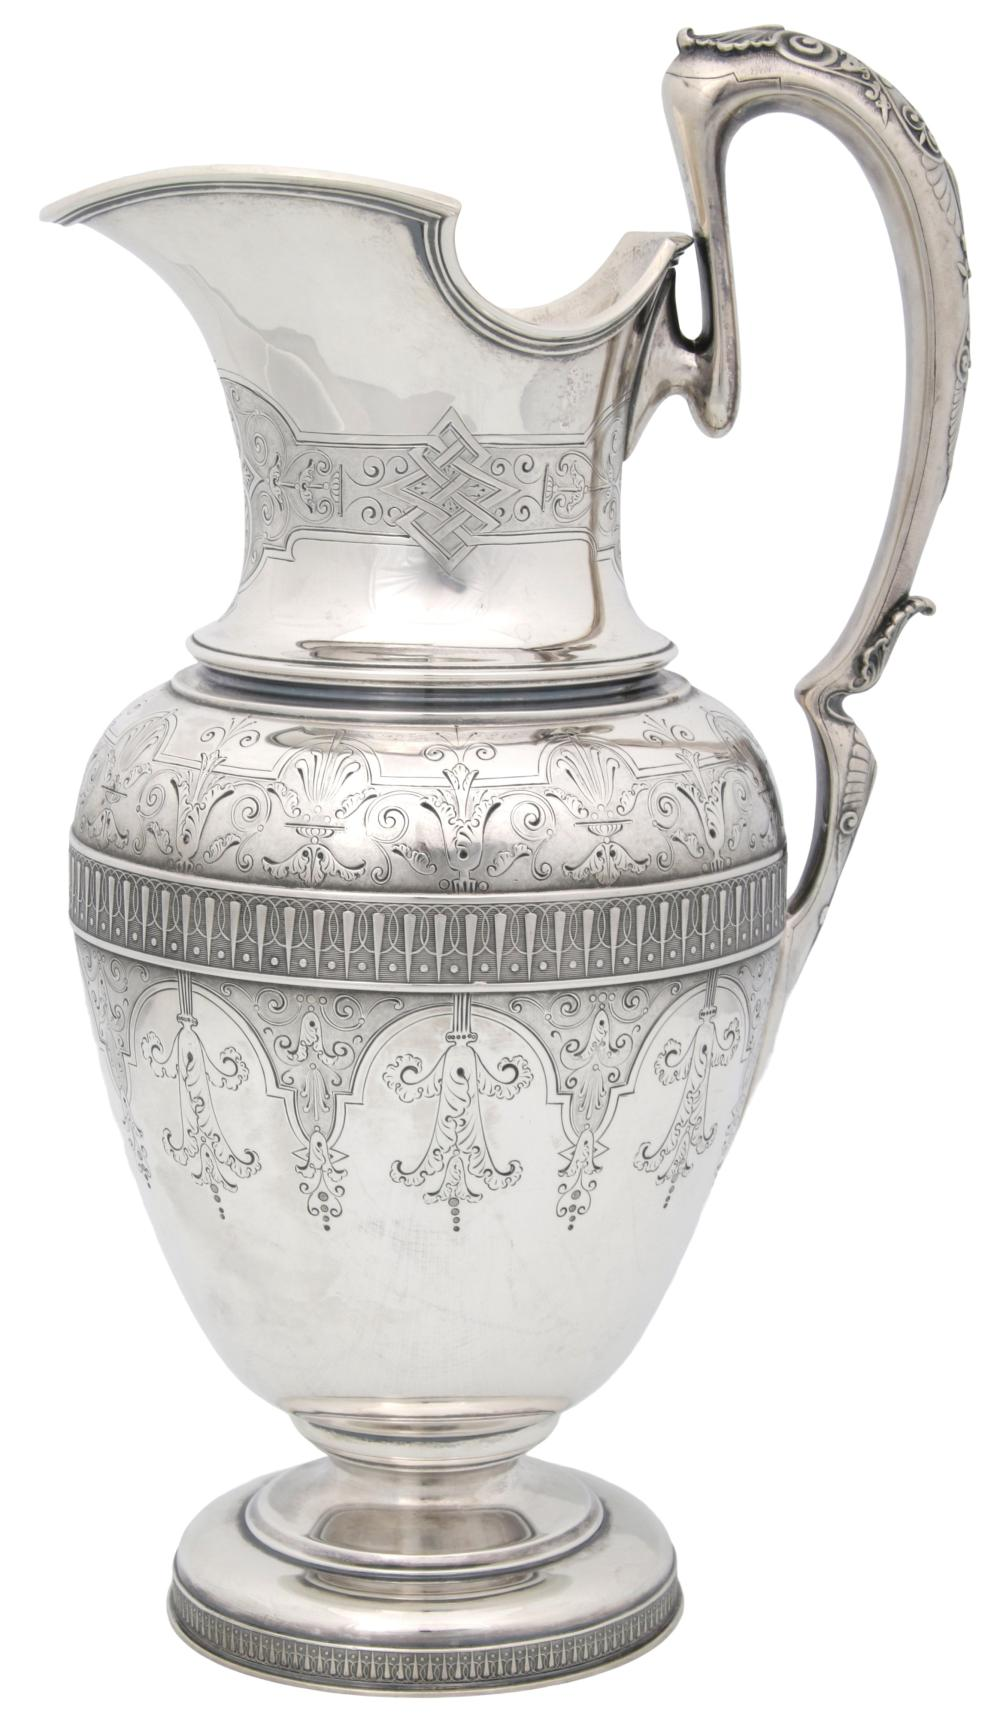 Tiffany & Co. Sterling Silver Water Pitcher